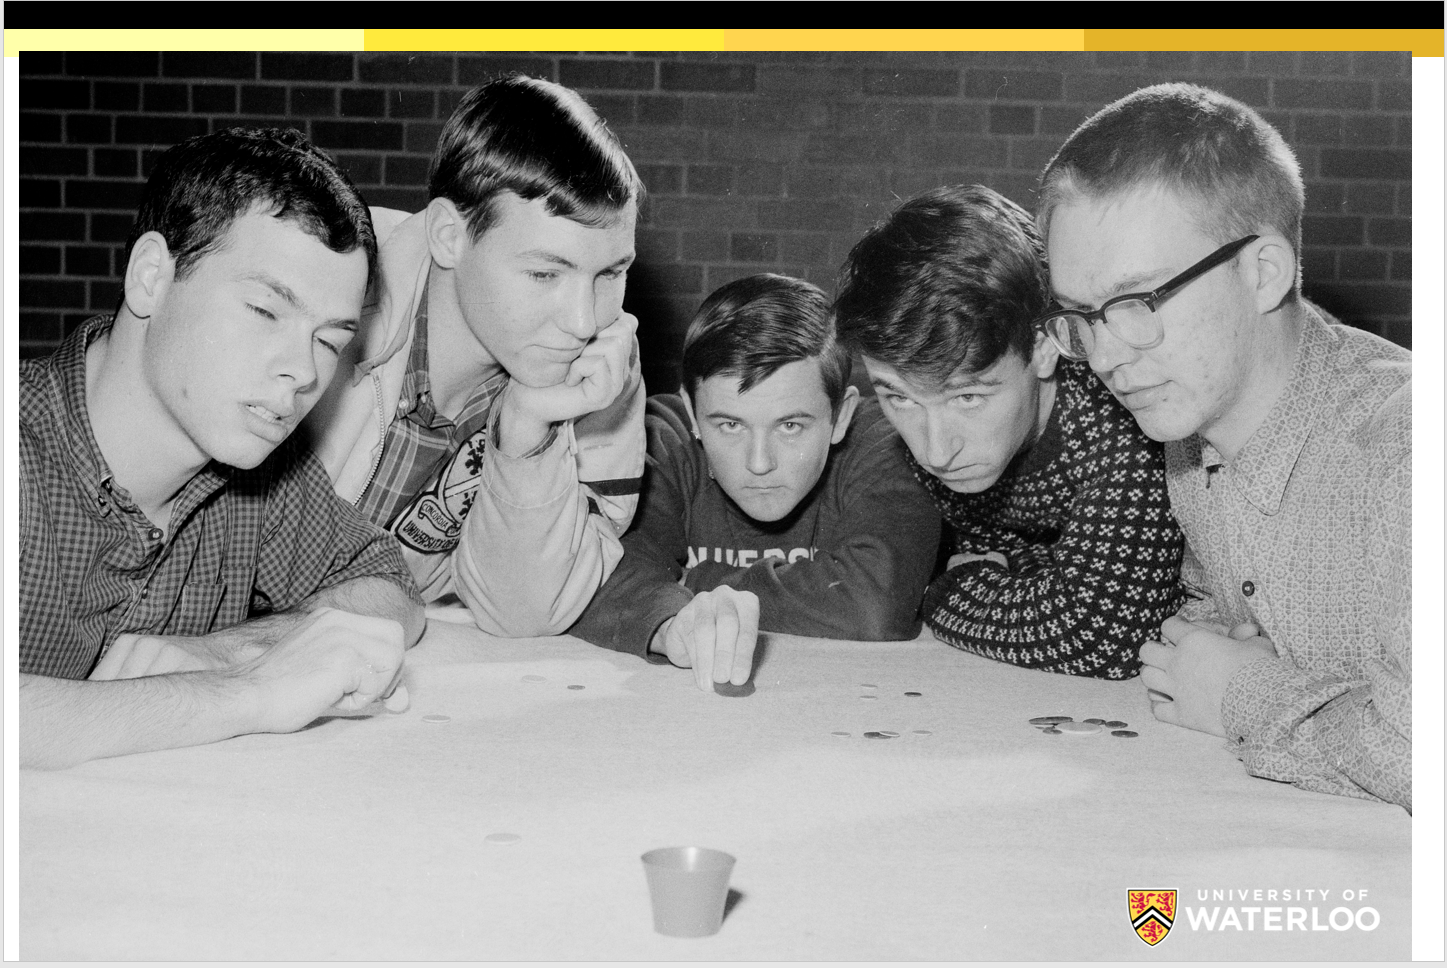 1960s students playing Tiddlywinks